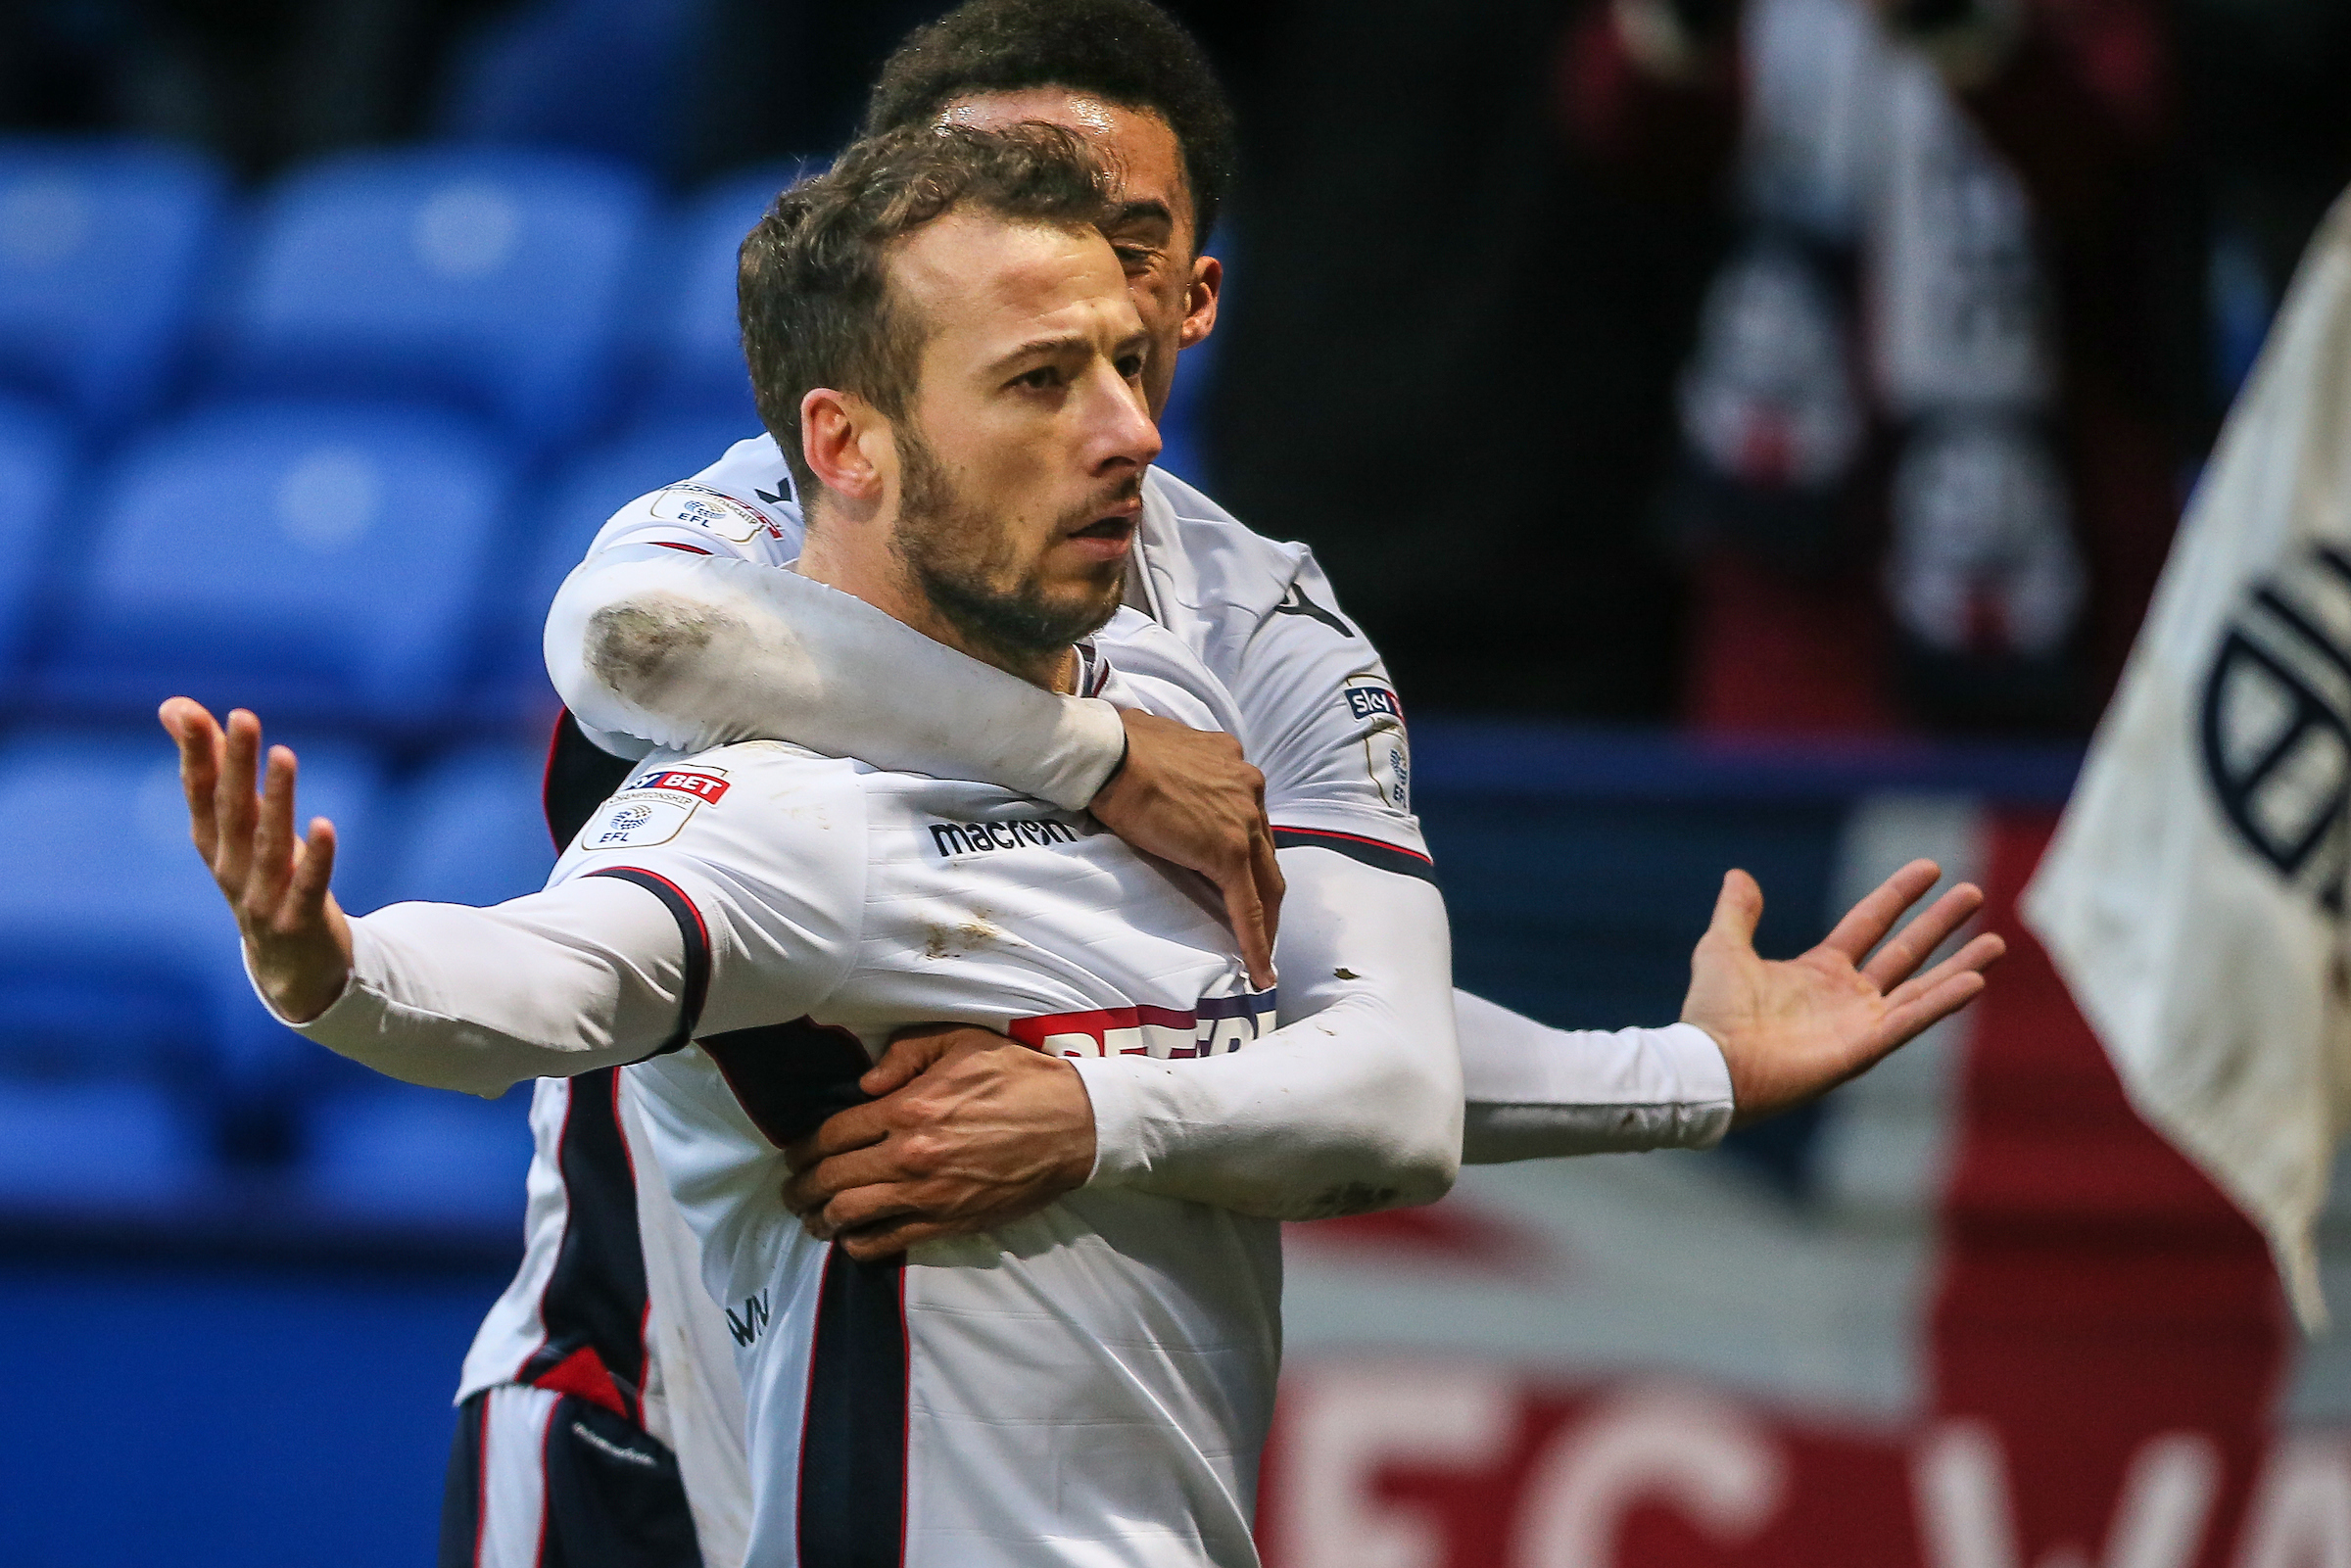 Adam Le Fondre is one of the strikers being challenged to keep hold of his place at Wanderers